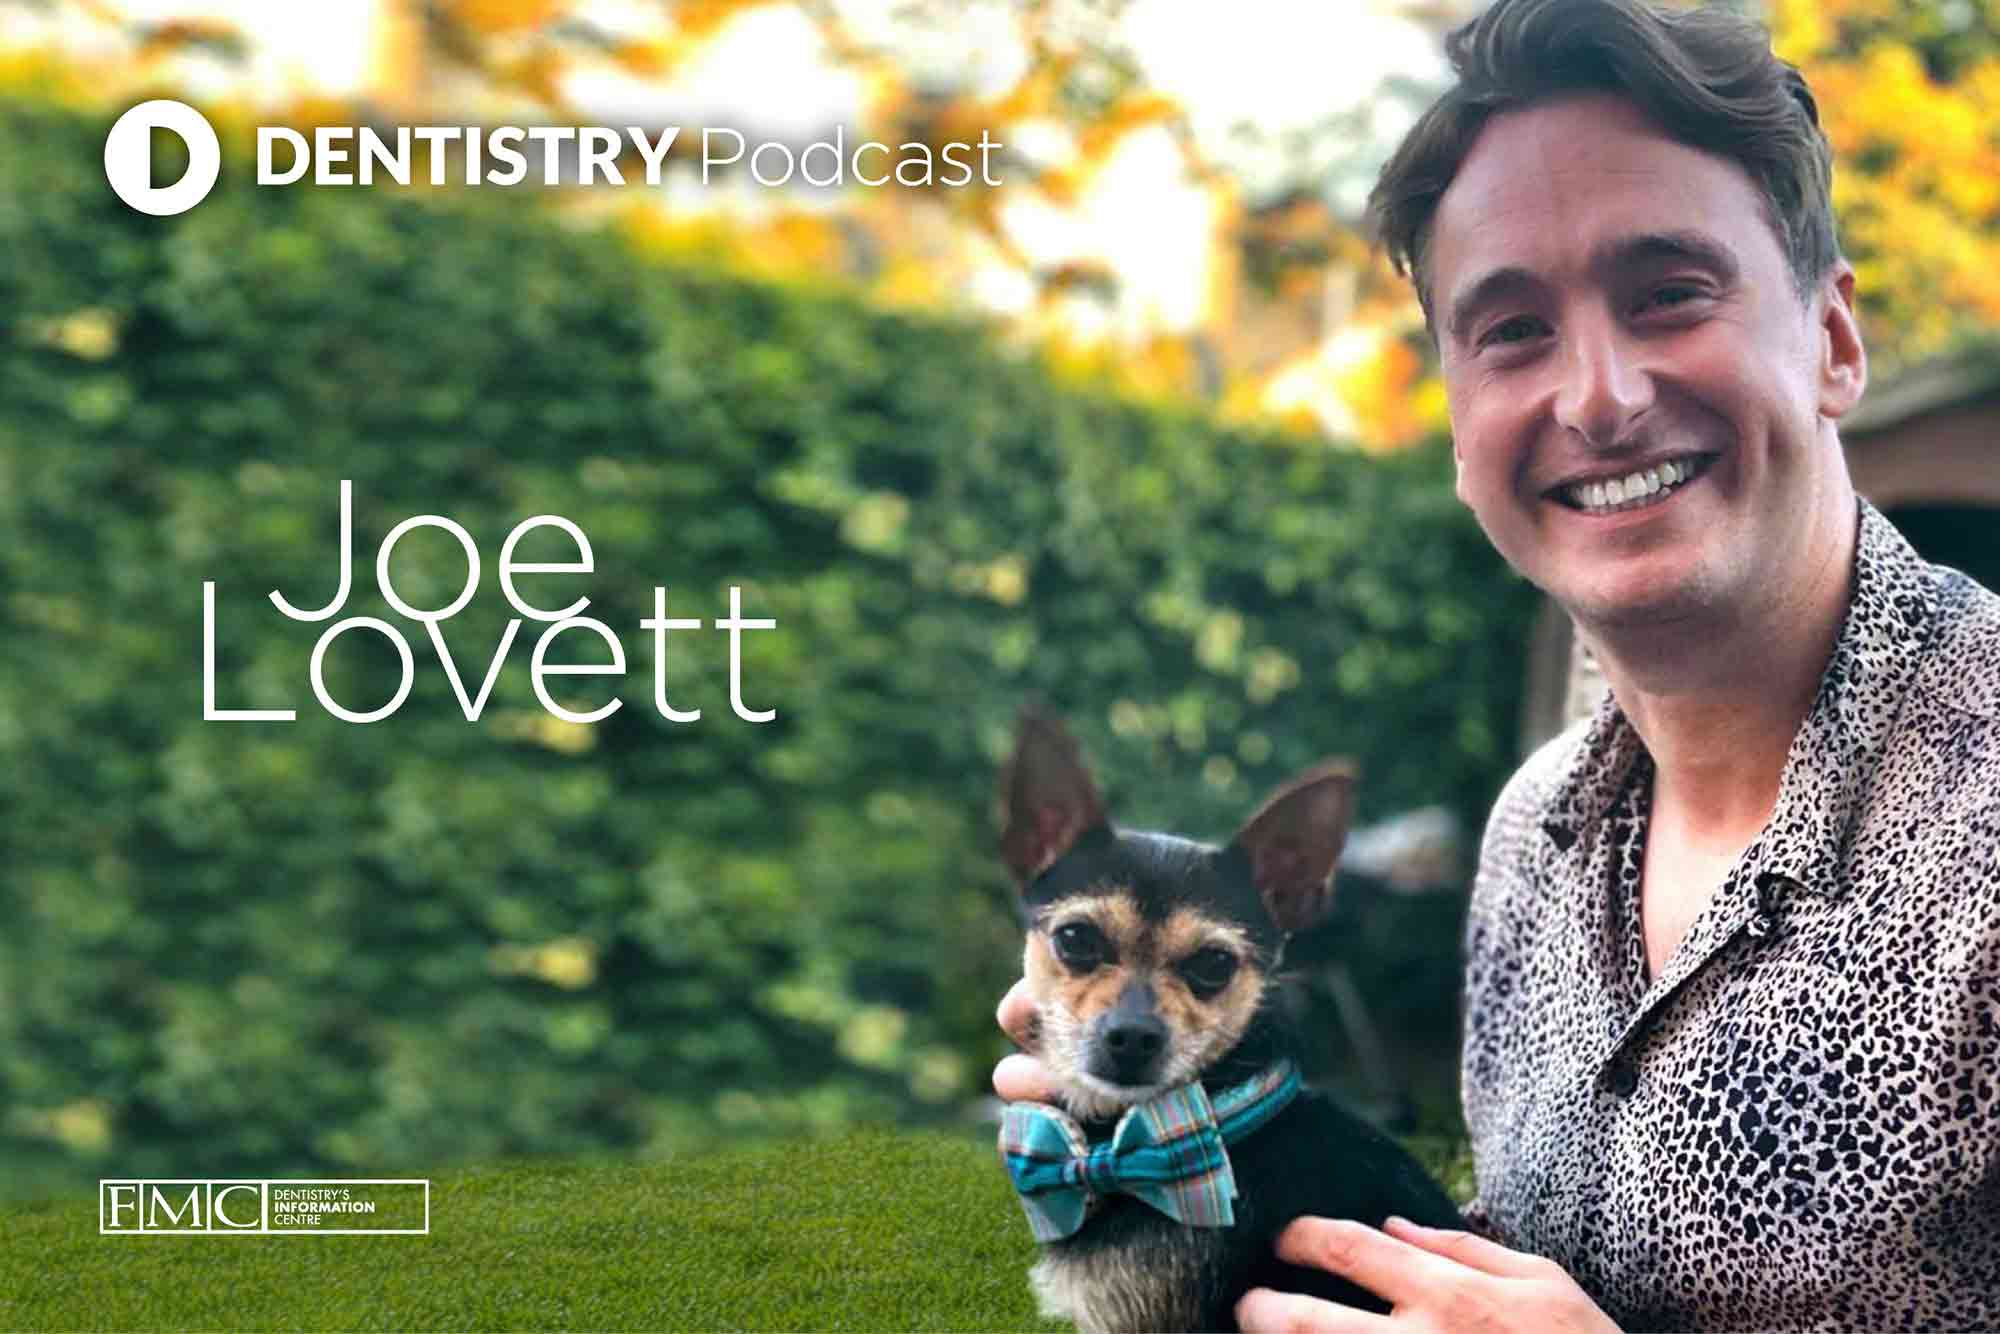 In the latest episode, we hear from Joe Lovett who discusses his latest projects, his time at FMC and how he hopes to make a difference